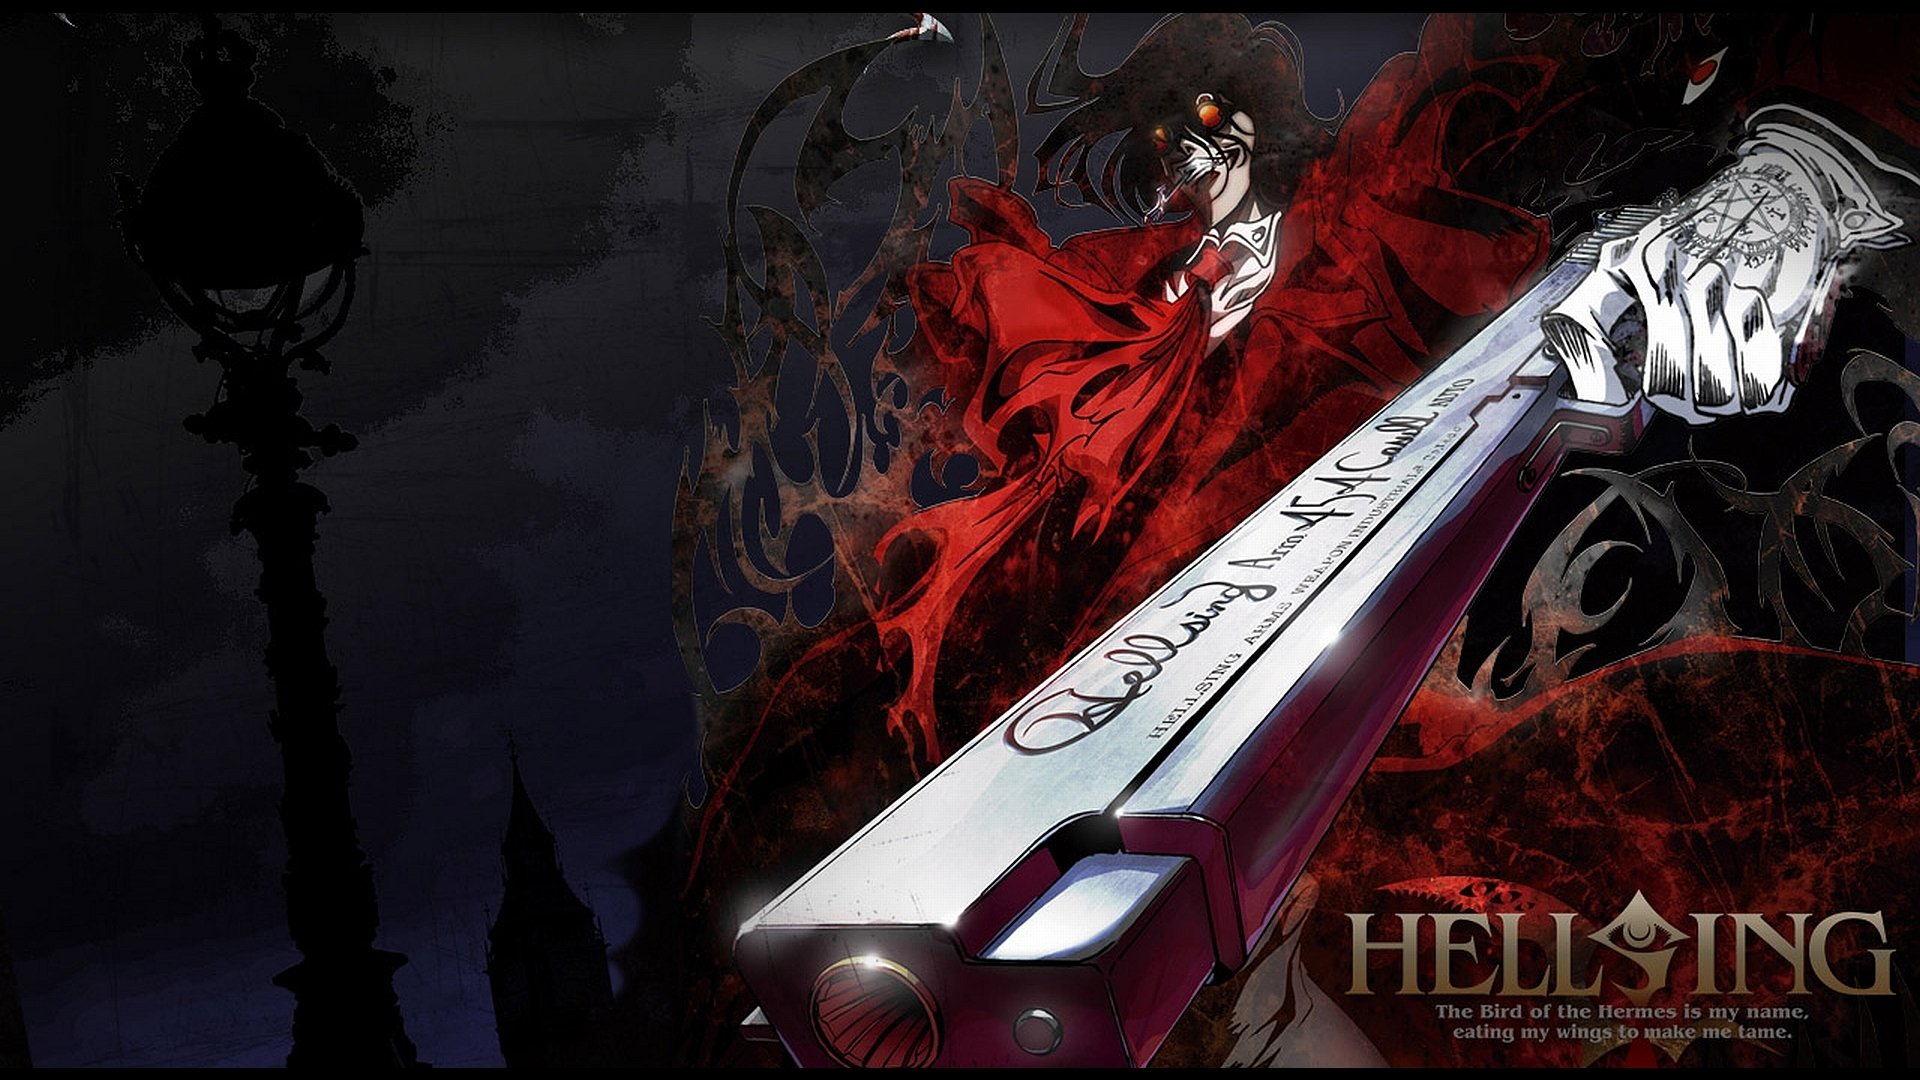 612 Hellsing Hd Wallpapers Background Images Wallpaper Abyss